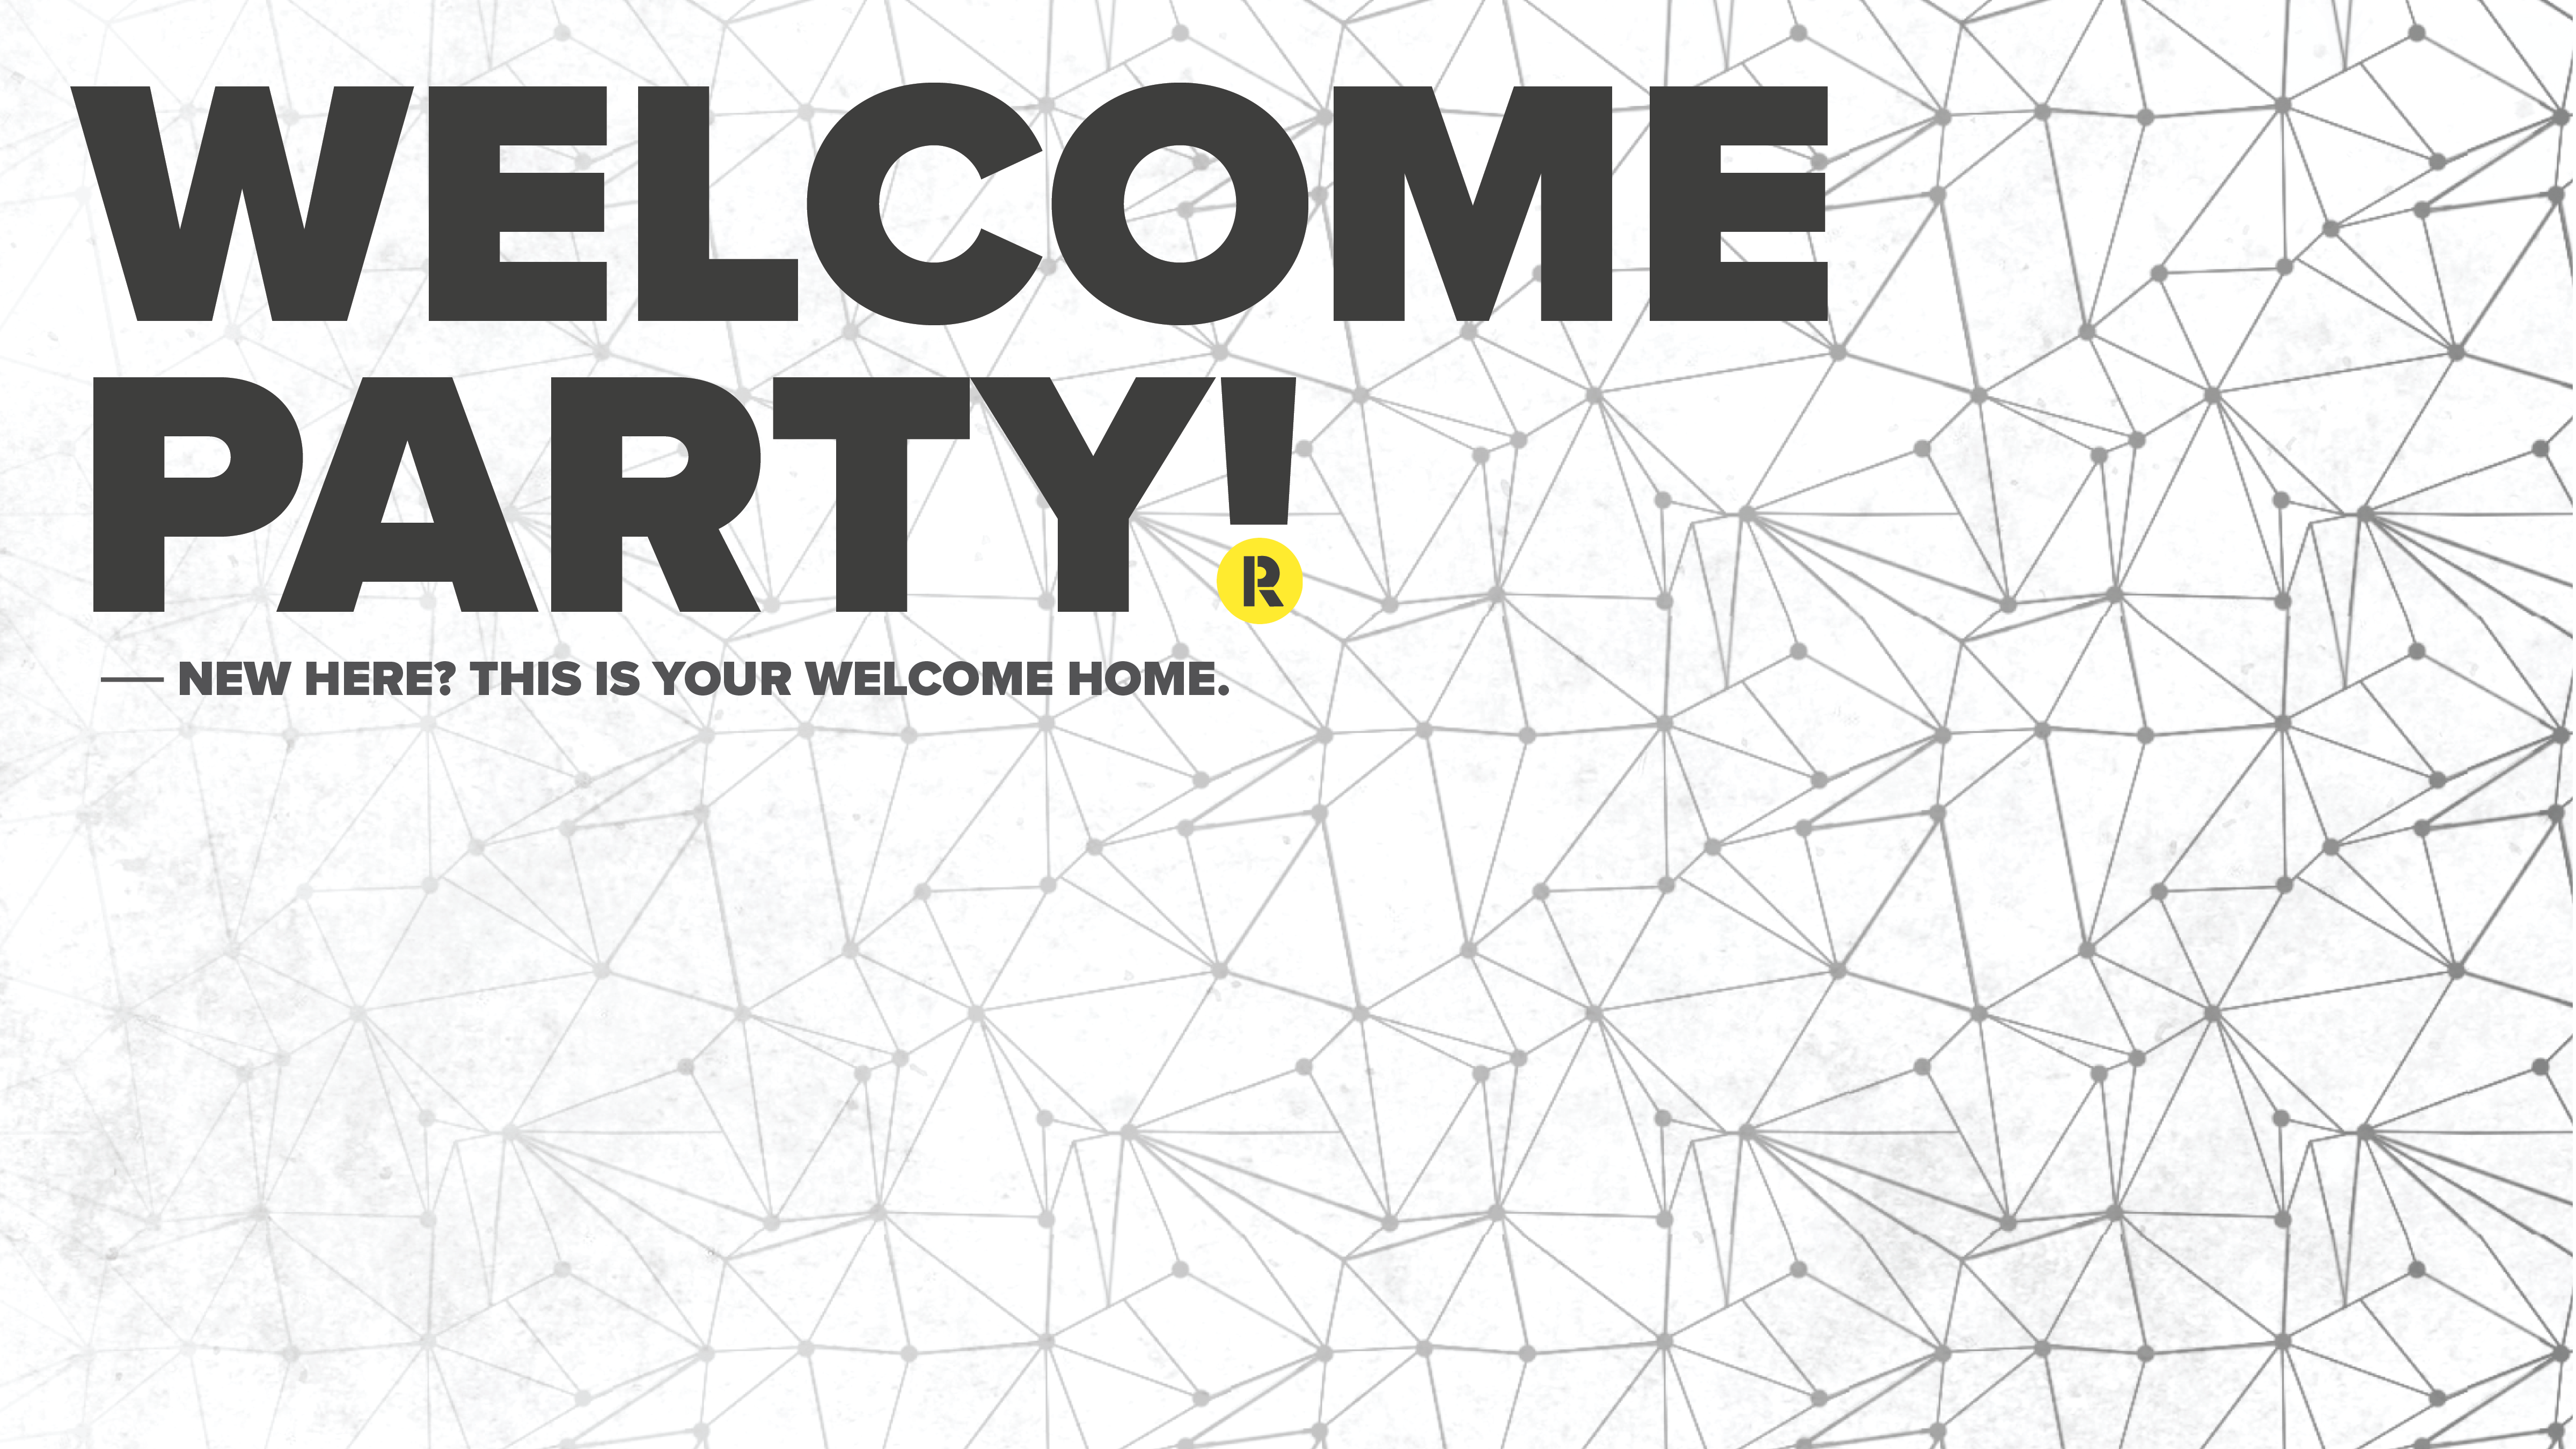 Welcome party1 main graphic